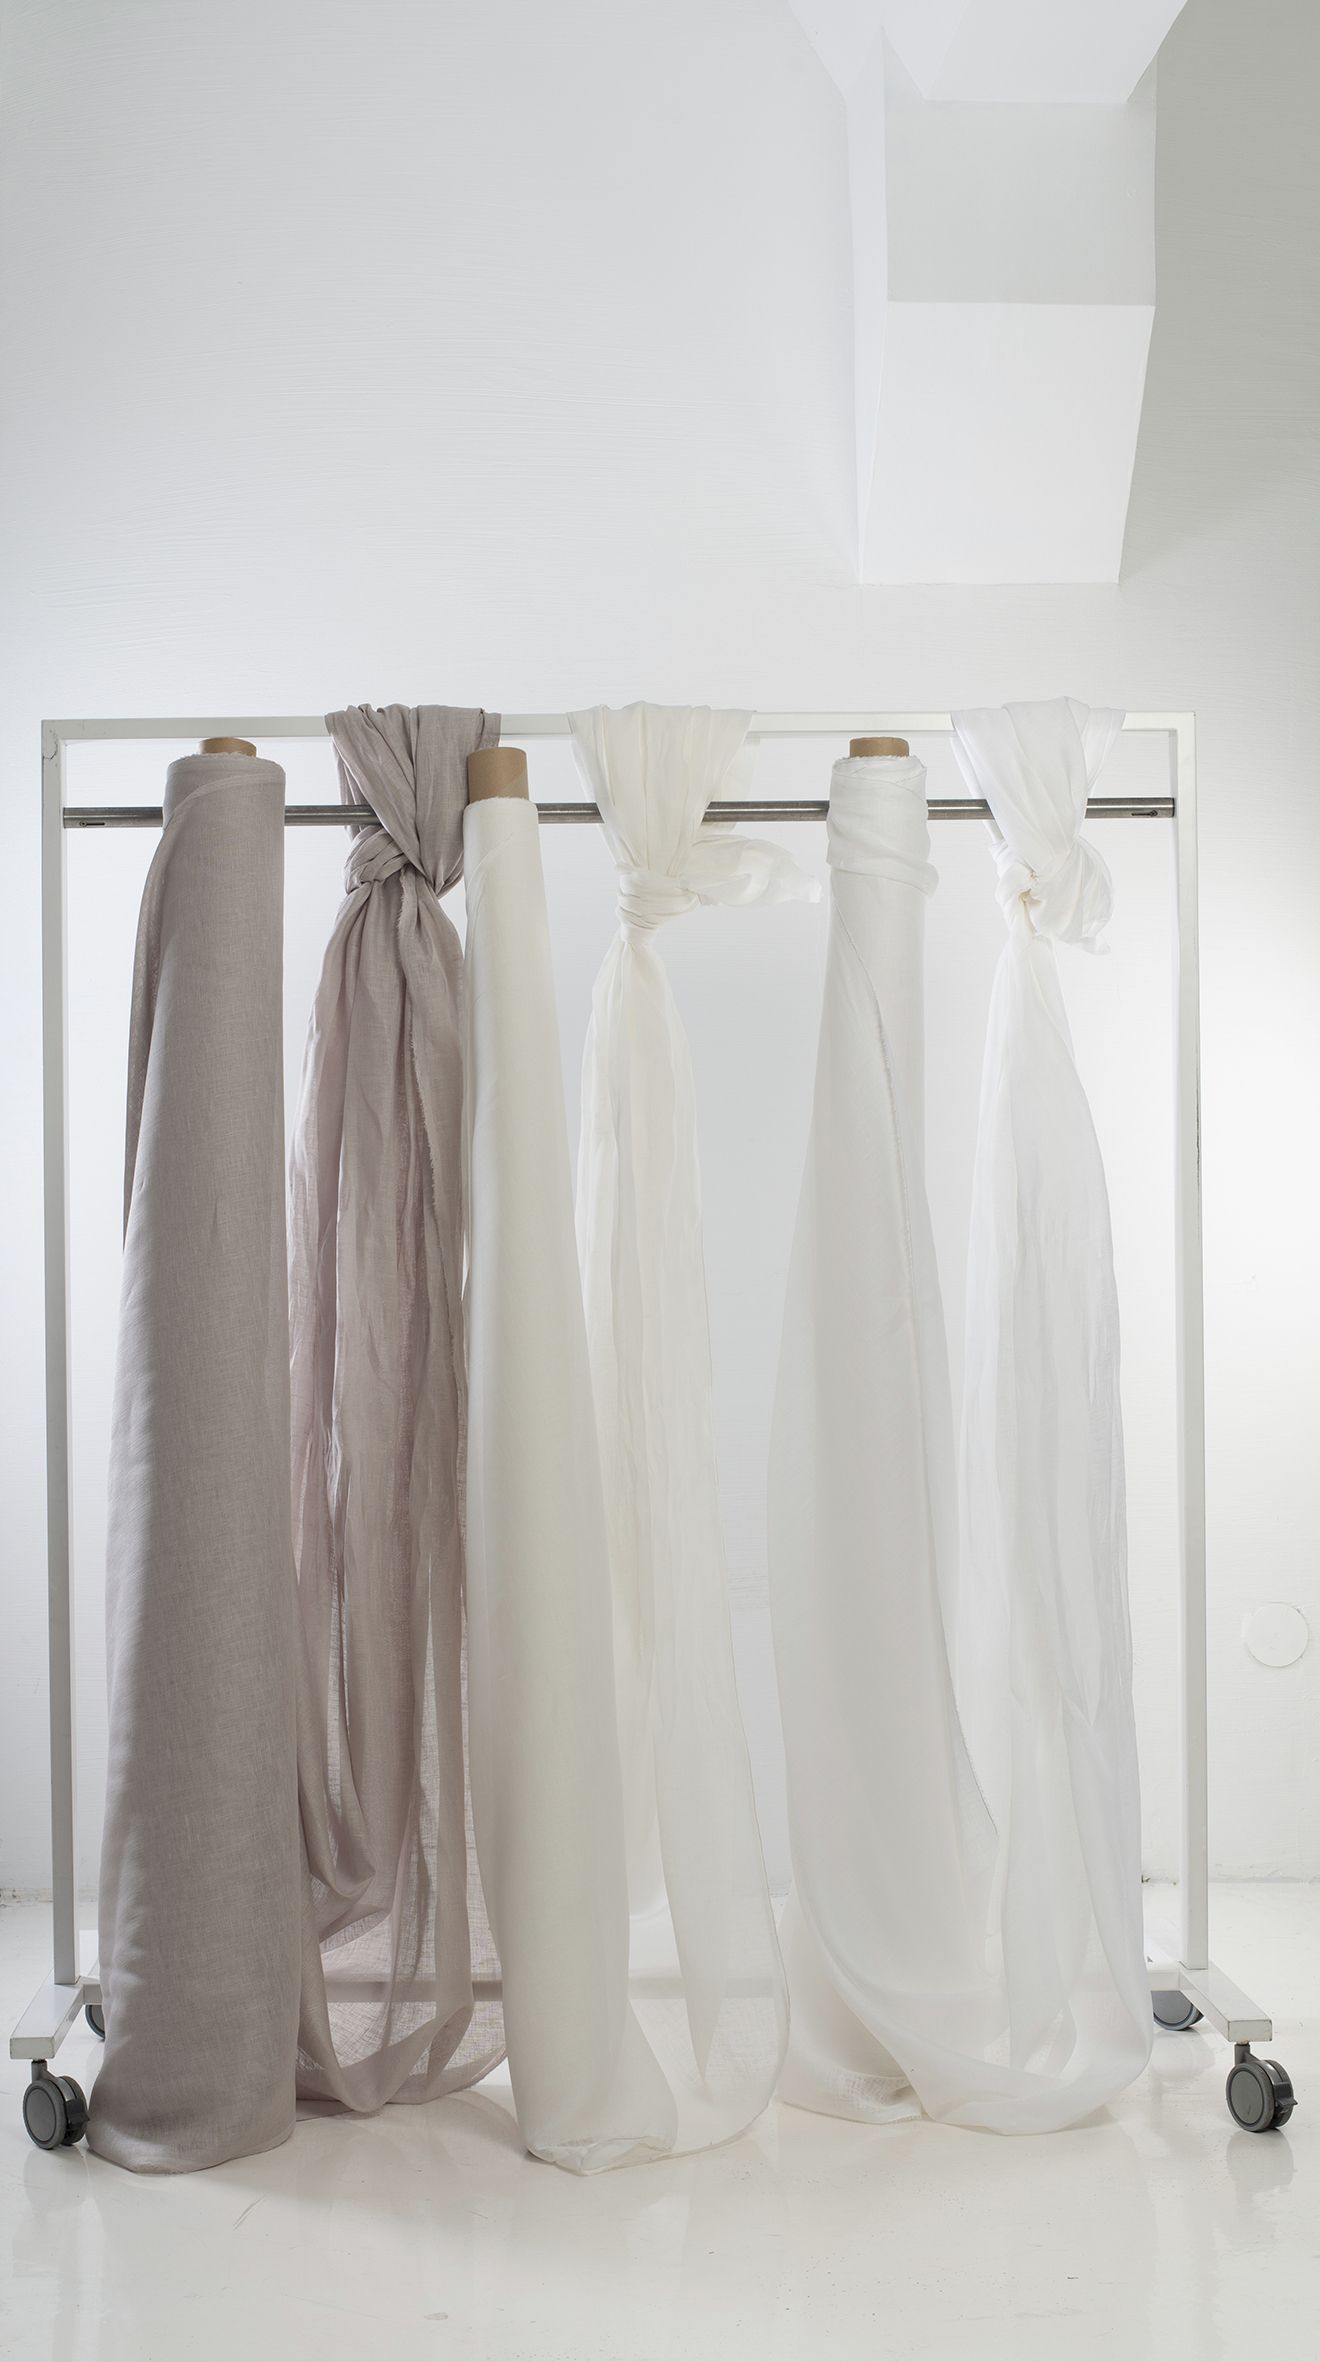 Sheer Curtains With Ties Off White Linen Drapes Tie Top Curtains